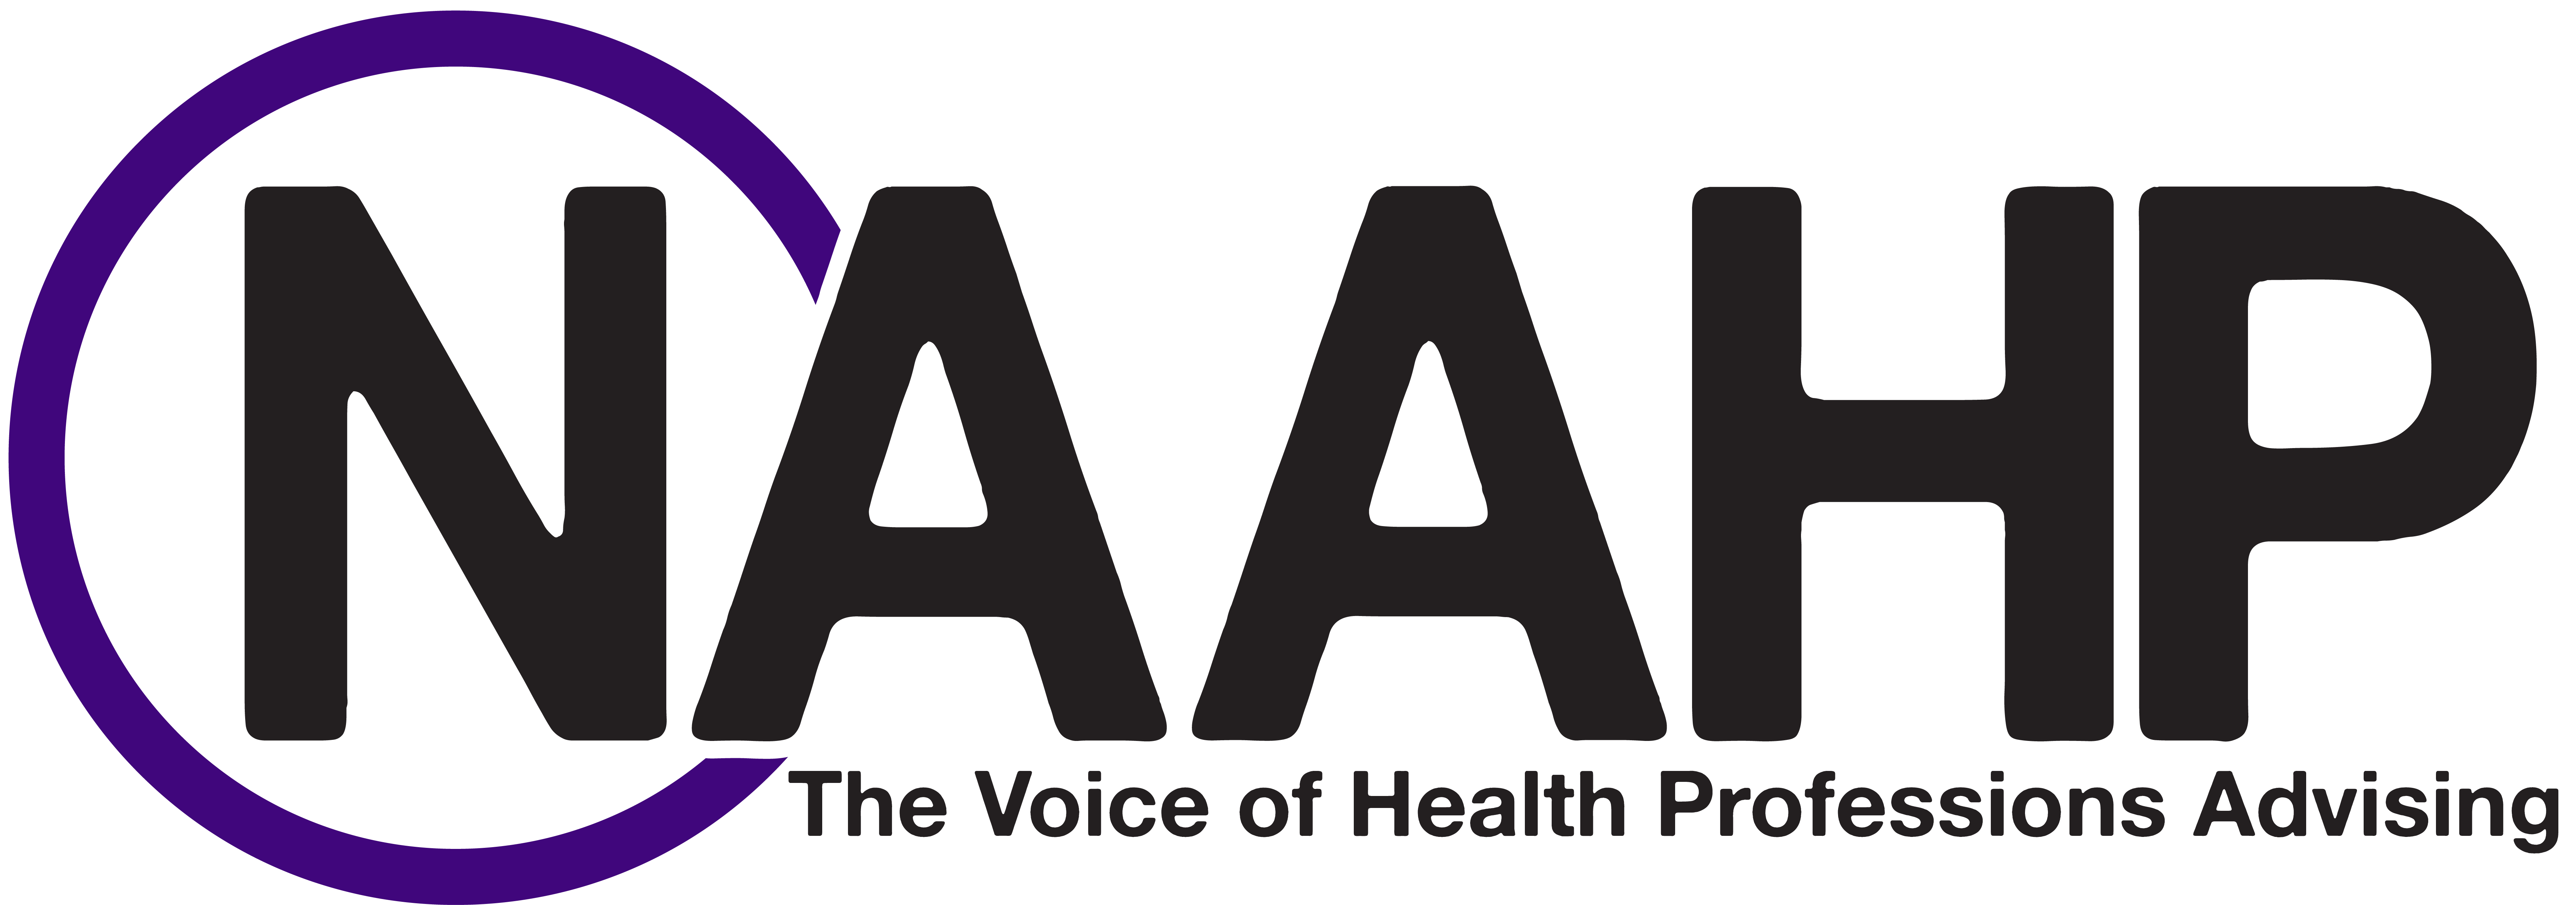 National Association of Advisors for the Health Professions